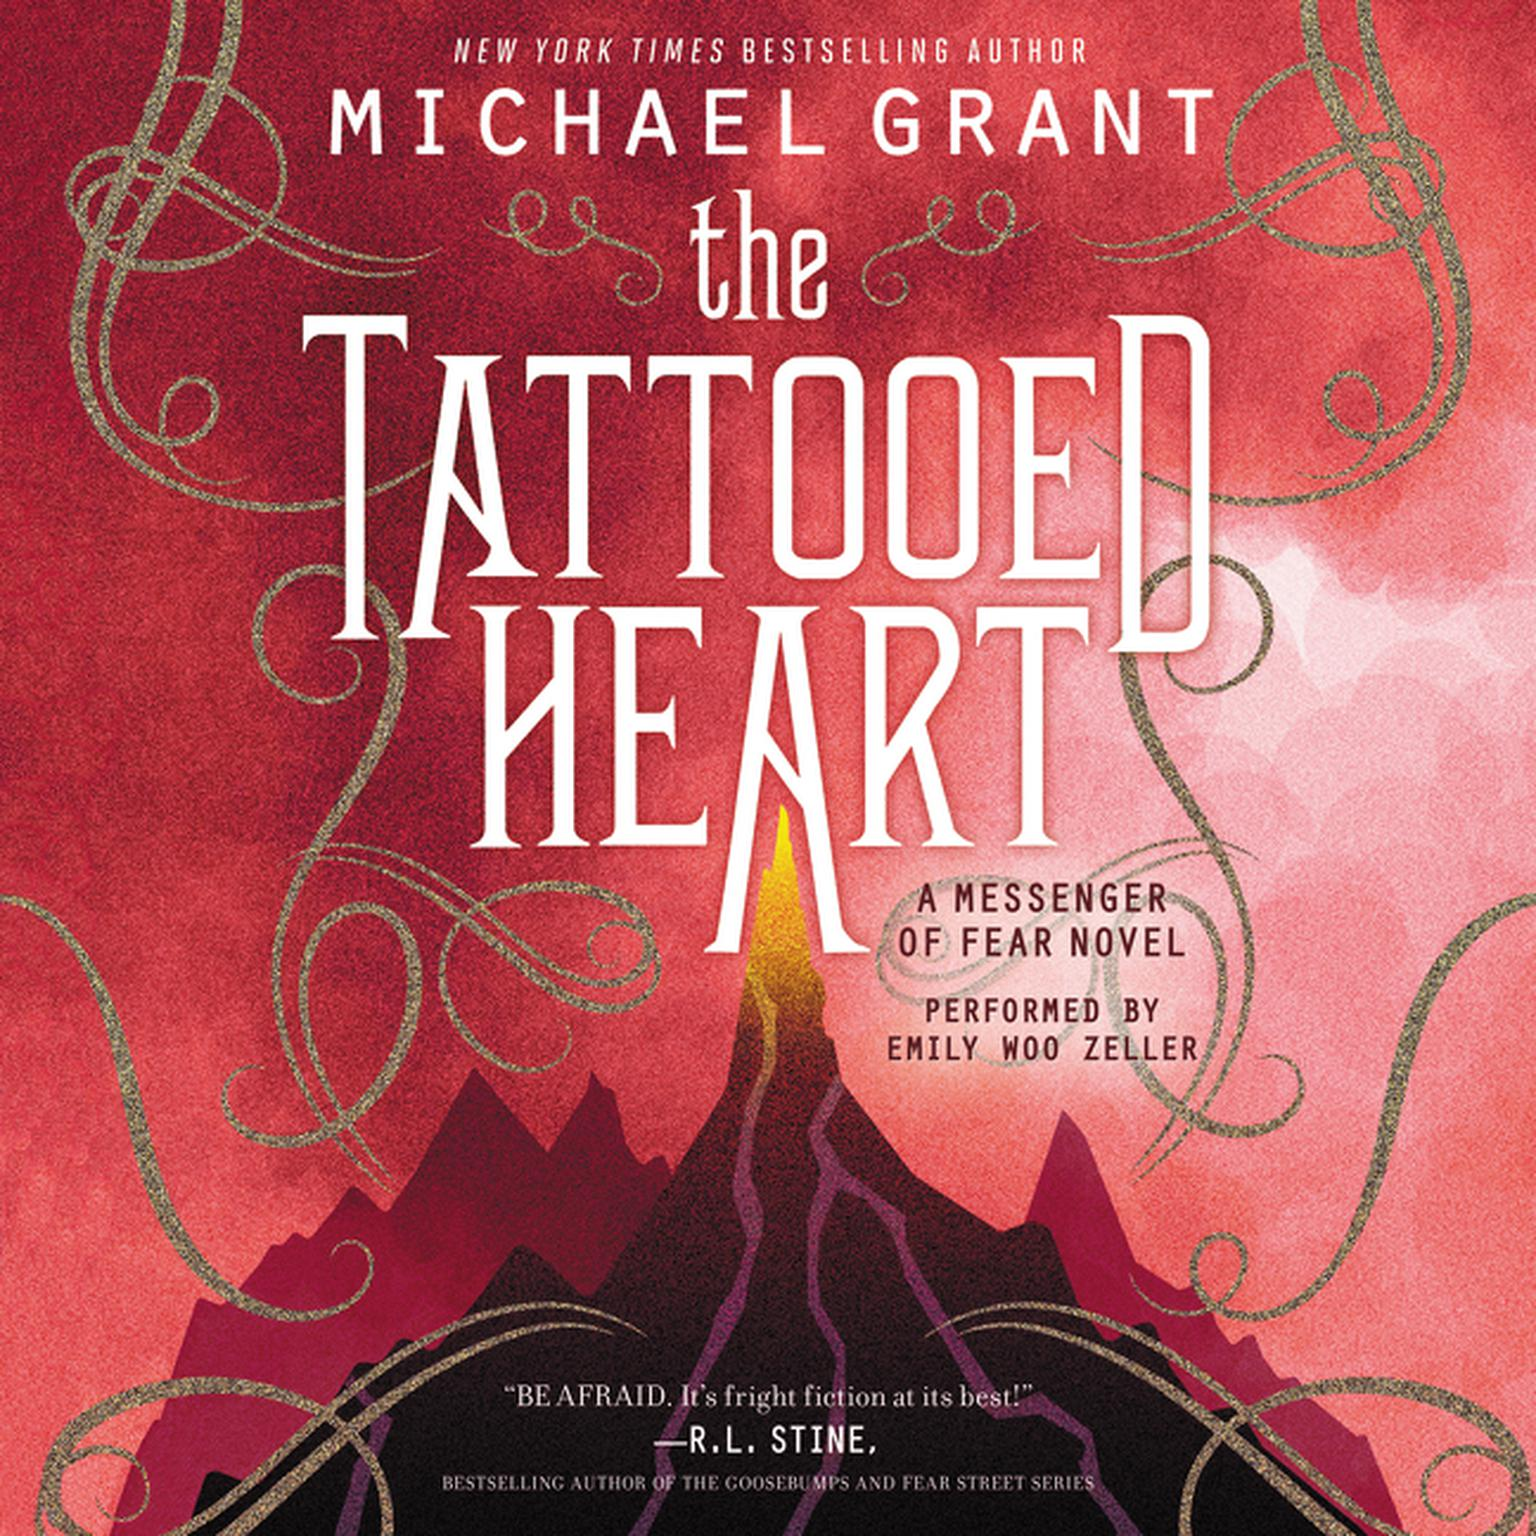 Printable The Tattooed Heart: A Messenger of Fear Novel Audiobook Cover Art